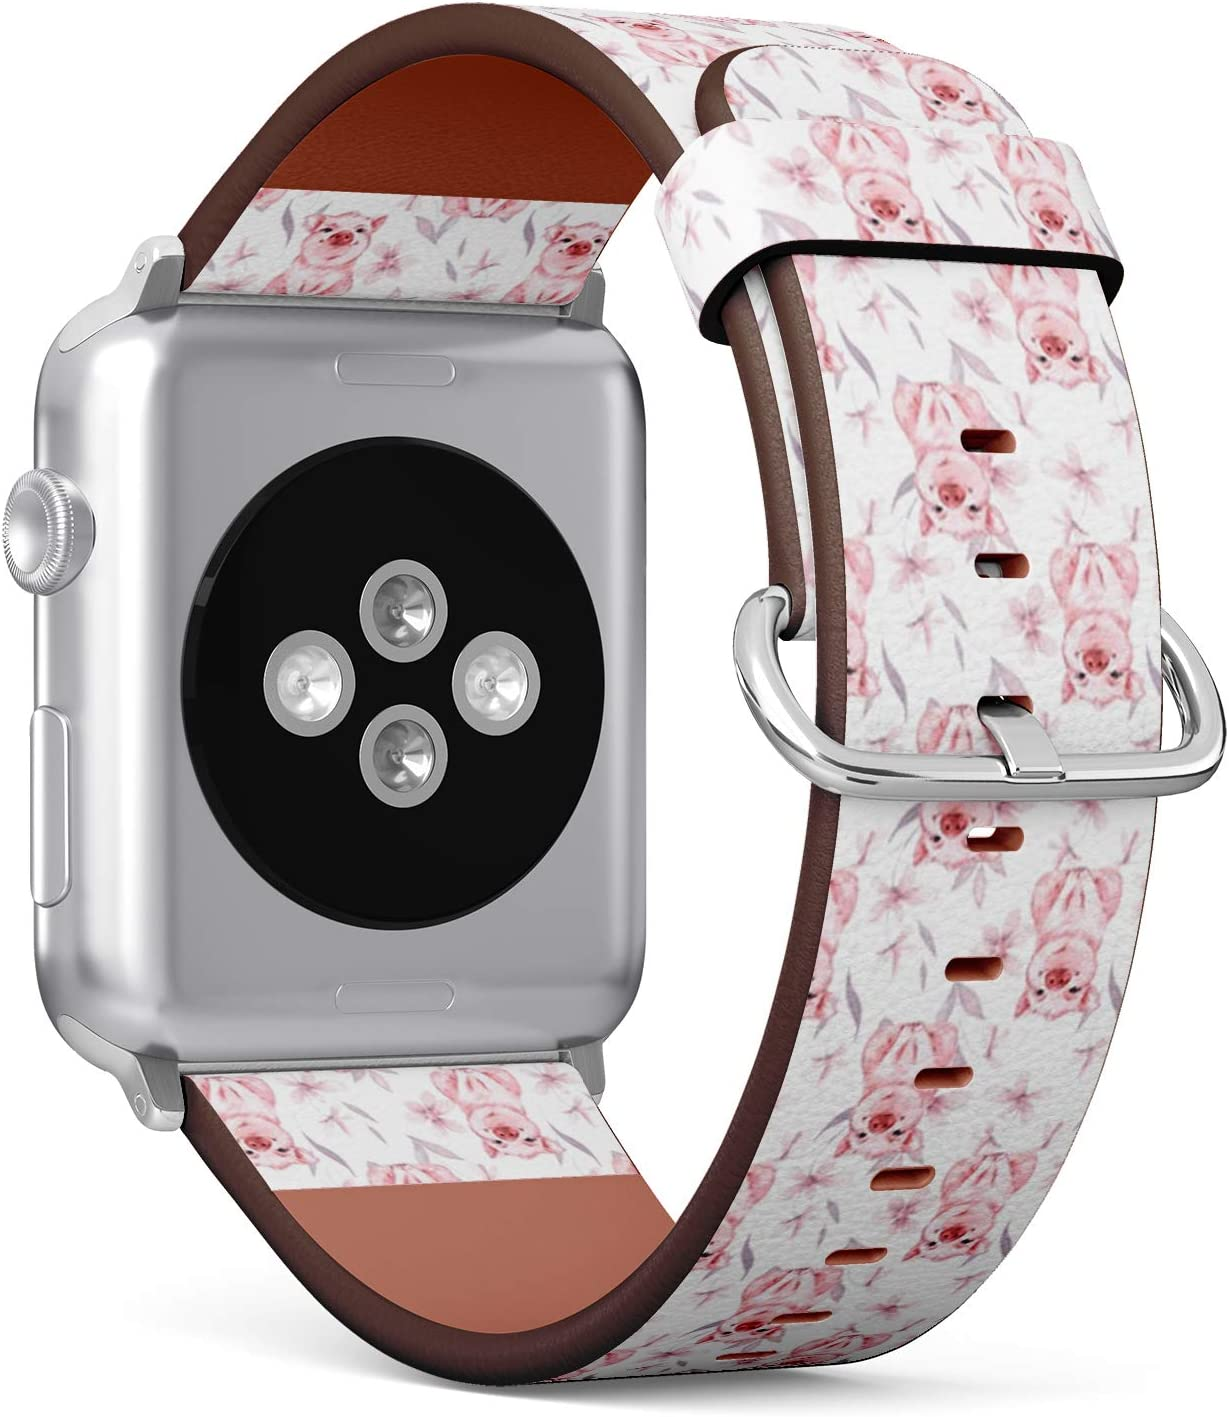 Compatible with Apple Watch Serie 4/3/2/1 (Small Version 38/40 mm) Leather Wristband Bracelet Replacement Accessory Band + Adapters - Pig Flowers Watercolor